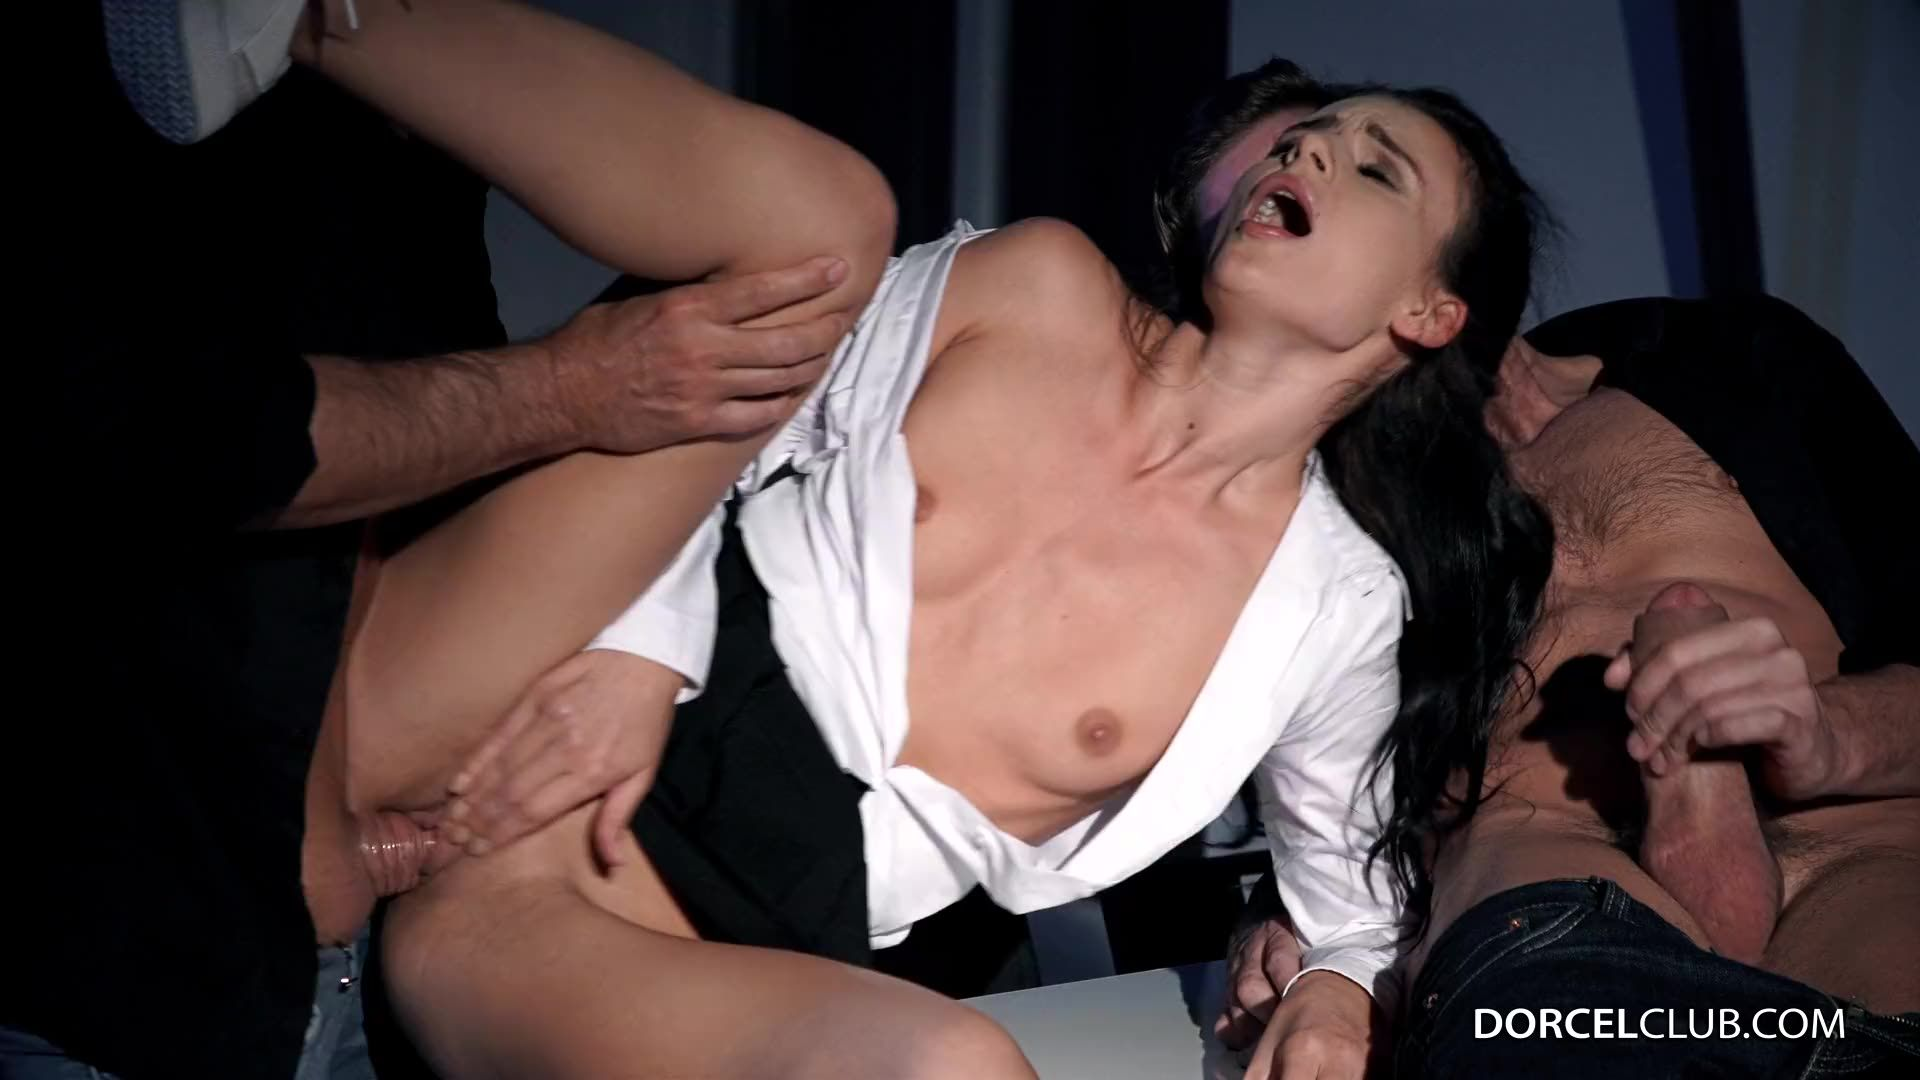 [DorcelClub] Caught In The Act - Kate Rich (DP)/(Brunette)